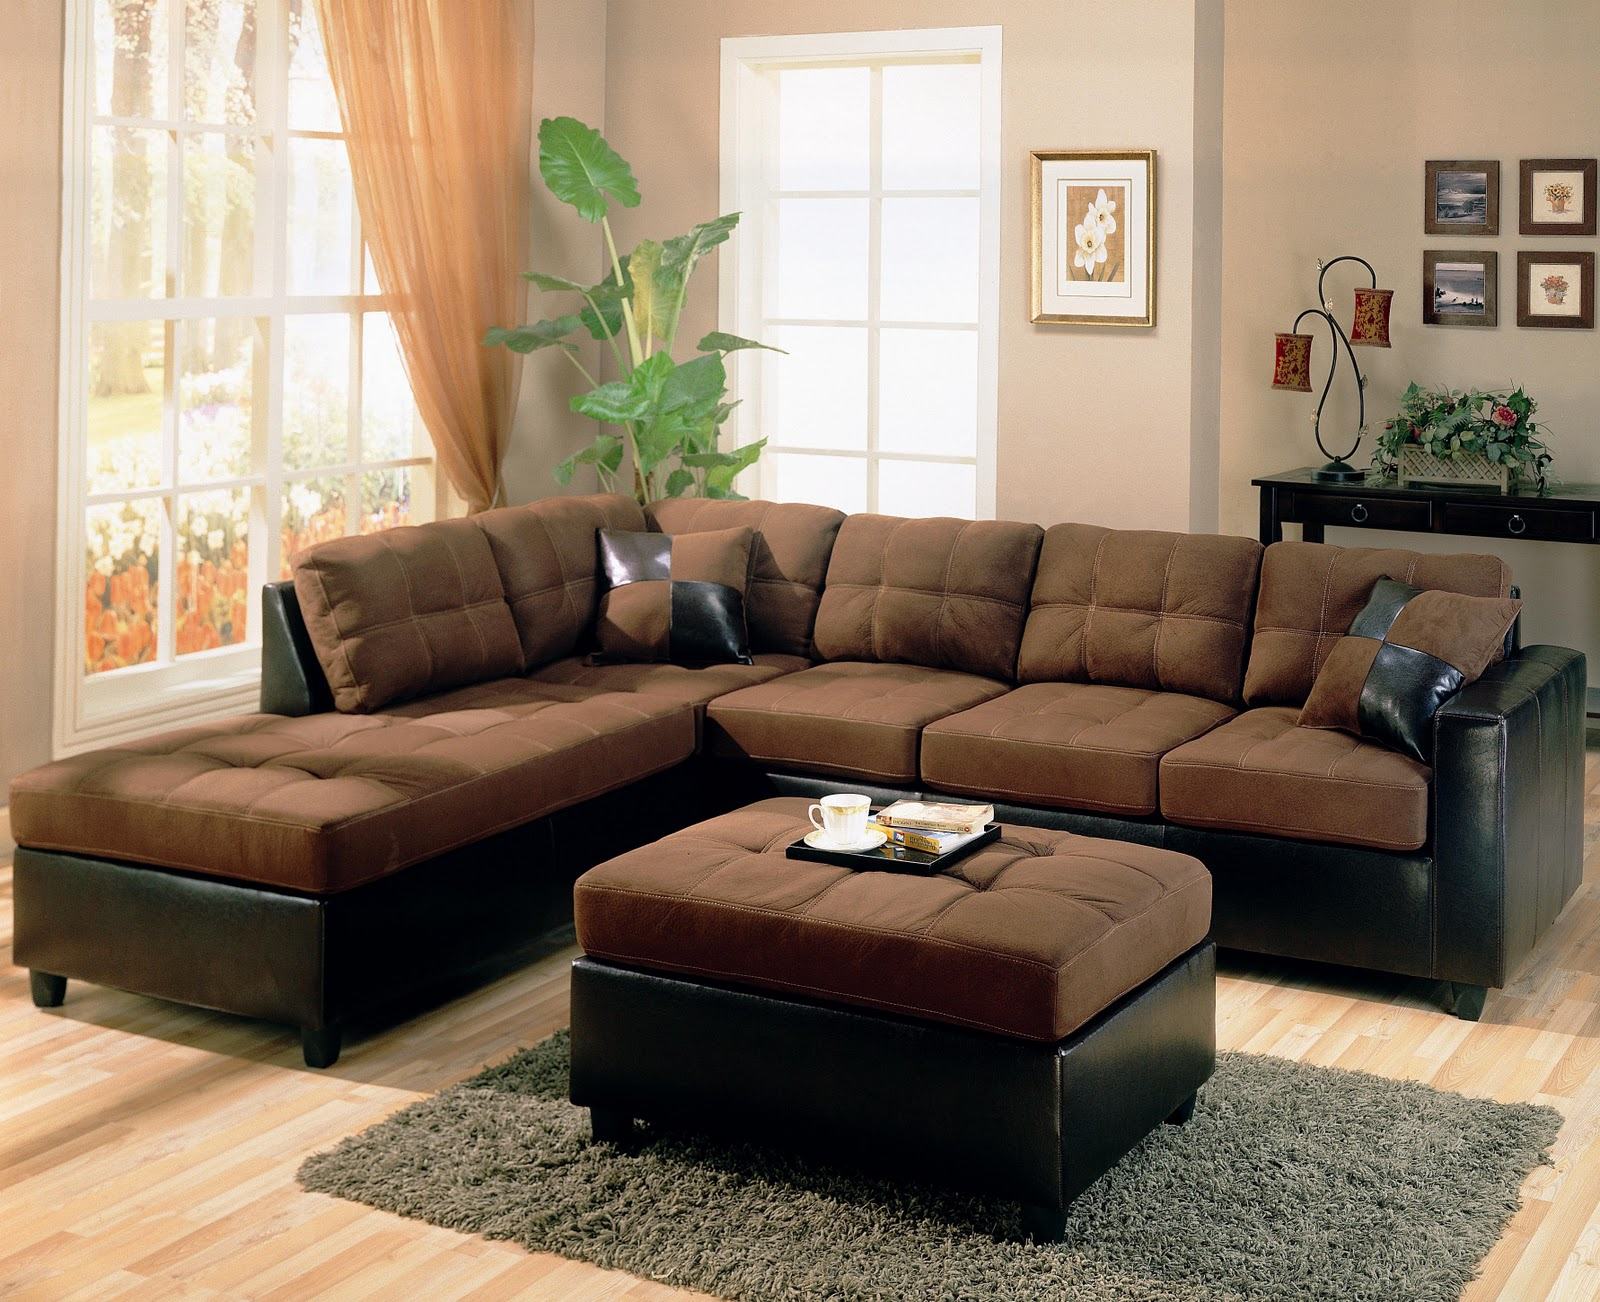 This Stylish Contemporary Sectional Sofa Will Be A Lovely Addition To You  Living Room Ensemble. The Generous Plush Seating Is Great For Everyday Use,  ...